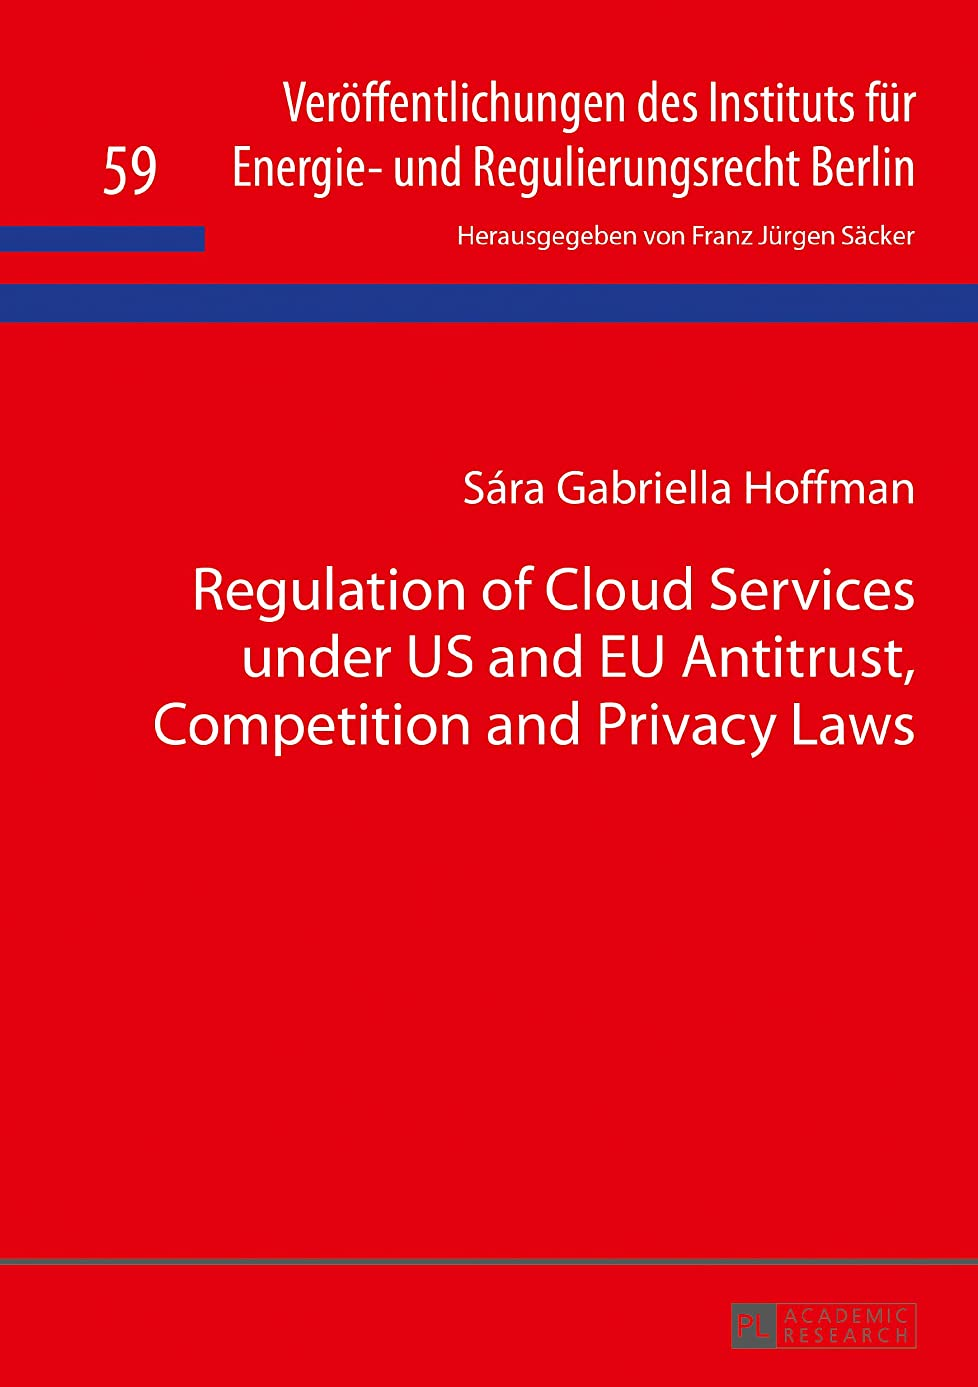 好み欲望戦うRegulation of Cloud Services under US and EU Antitrust, Competition and Privacy Laws (Veroeffentlichungen des Instituts fuer Energie- und Regulierungsrecht Berlin Book 59) (English Edition)